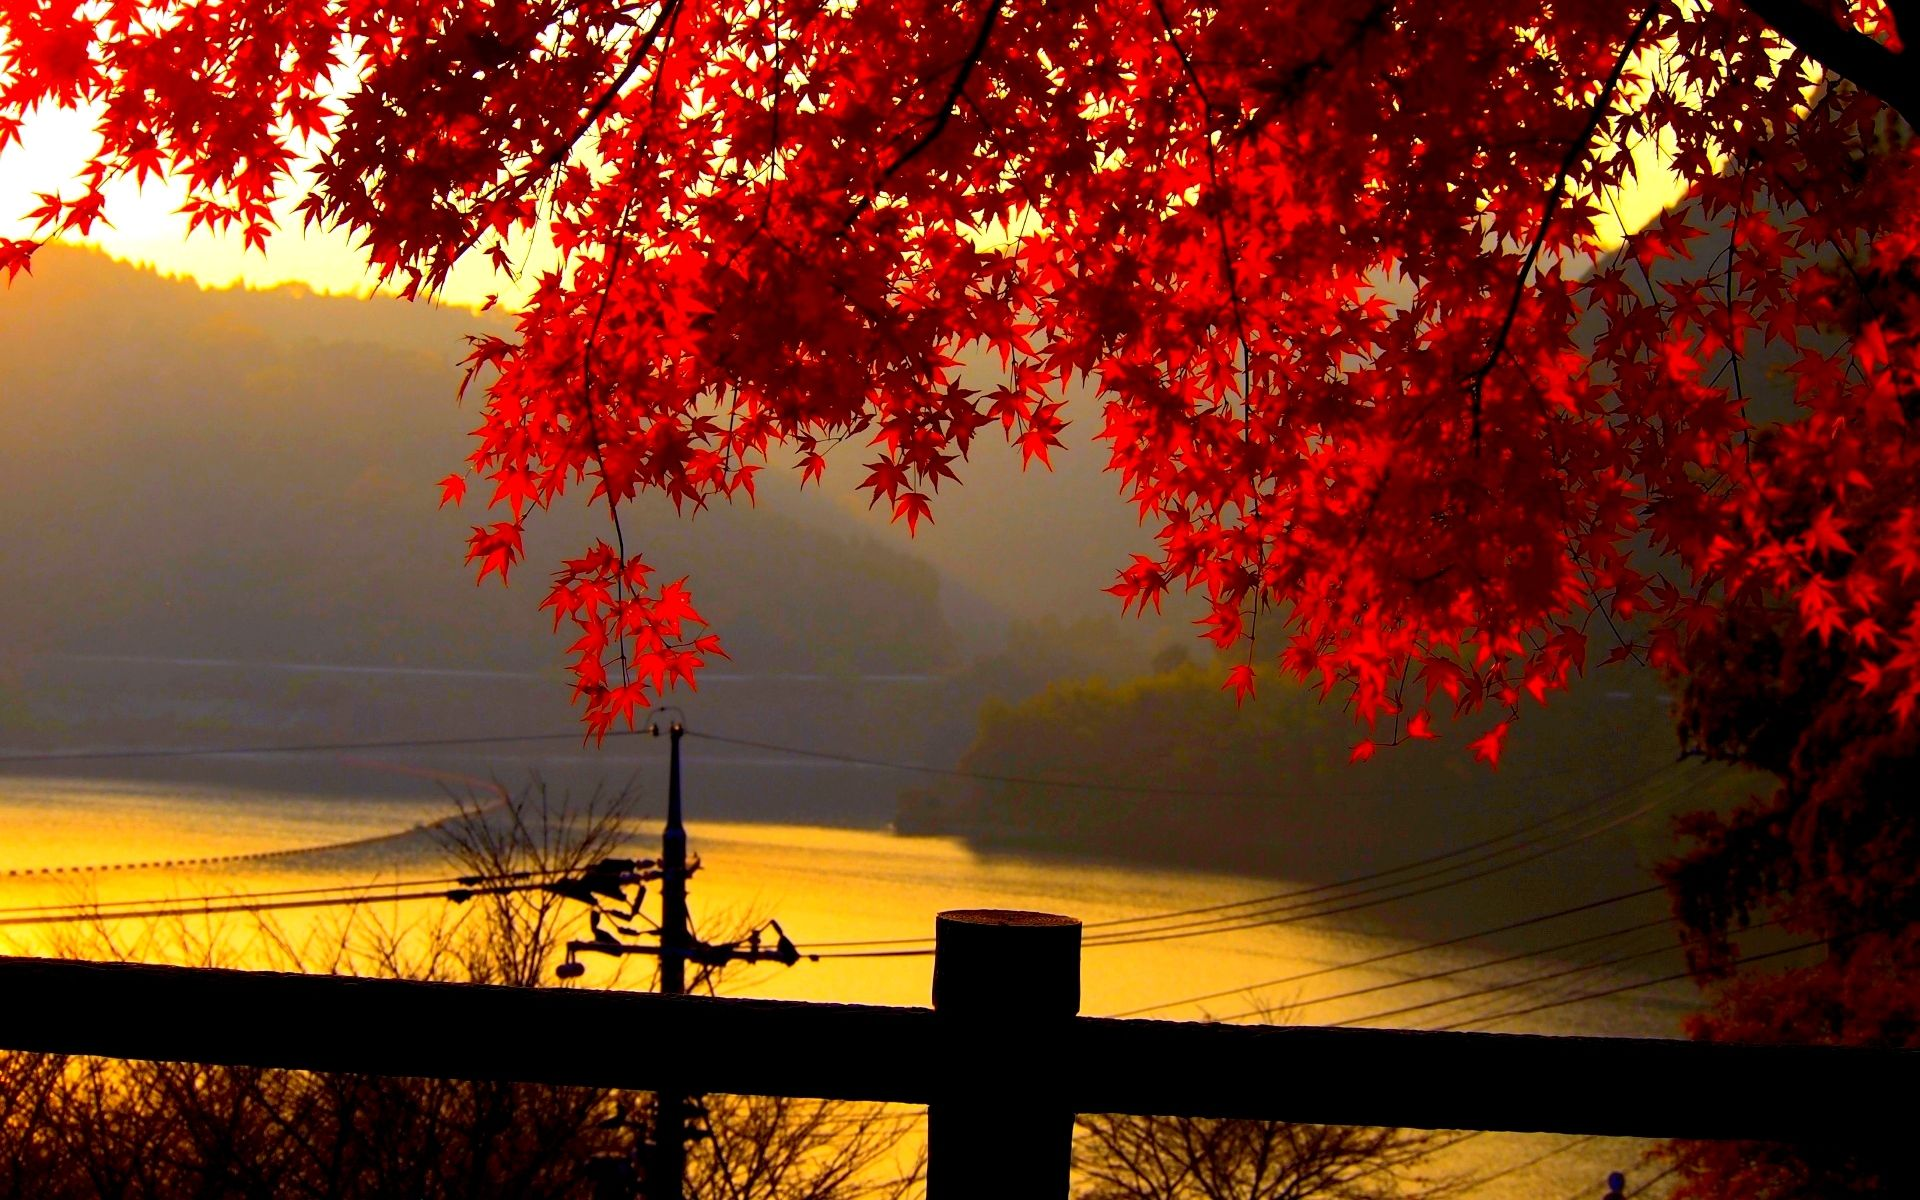 Fall Leaves Wallpaper High Resolution Ksy10 Ahuhah Com In